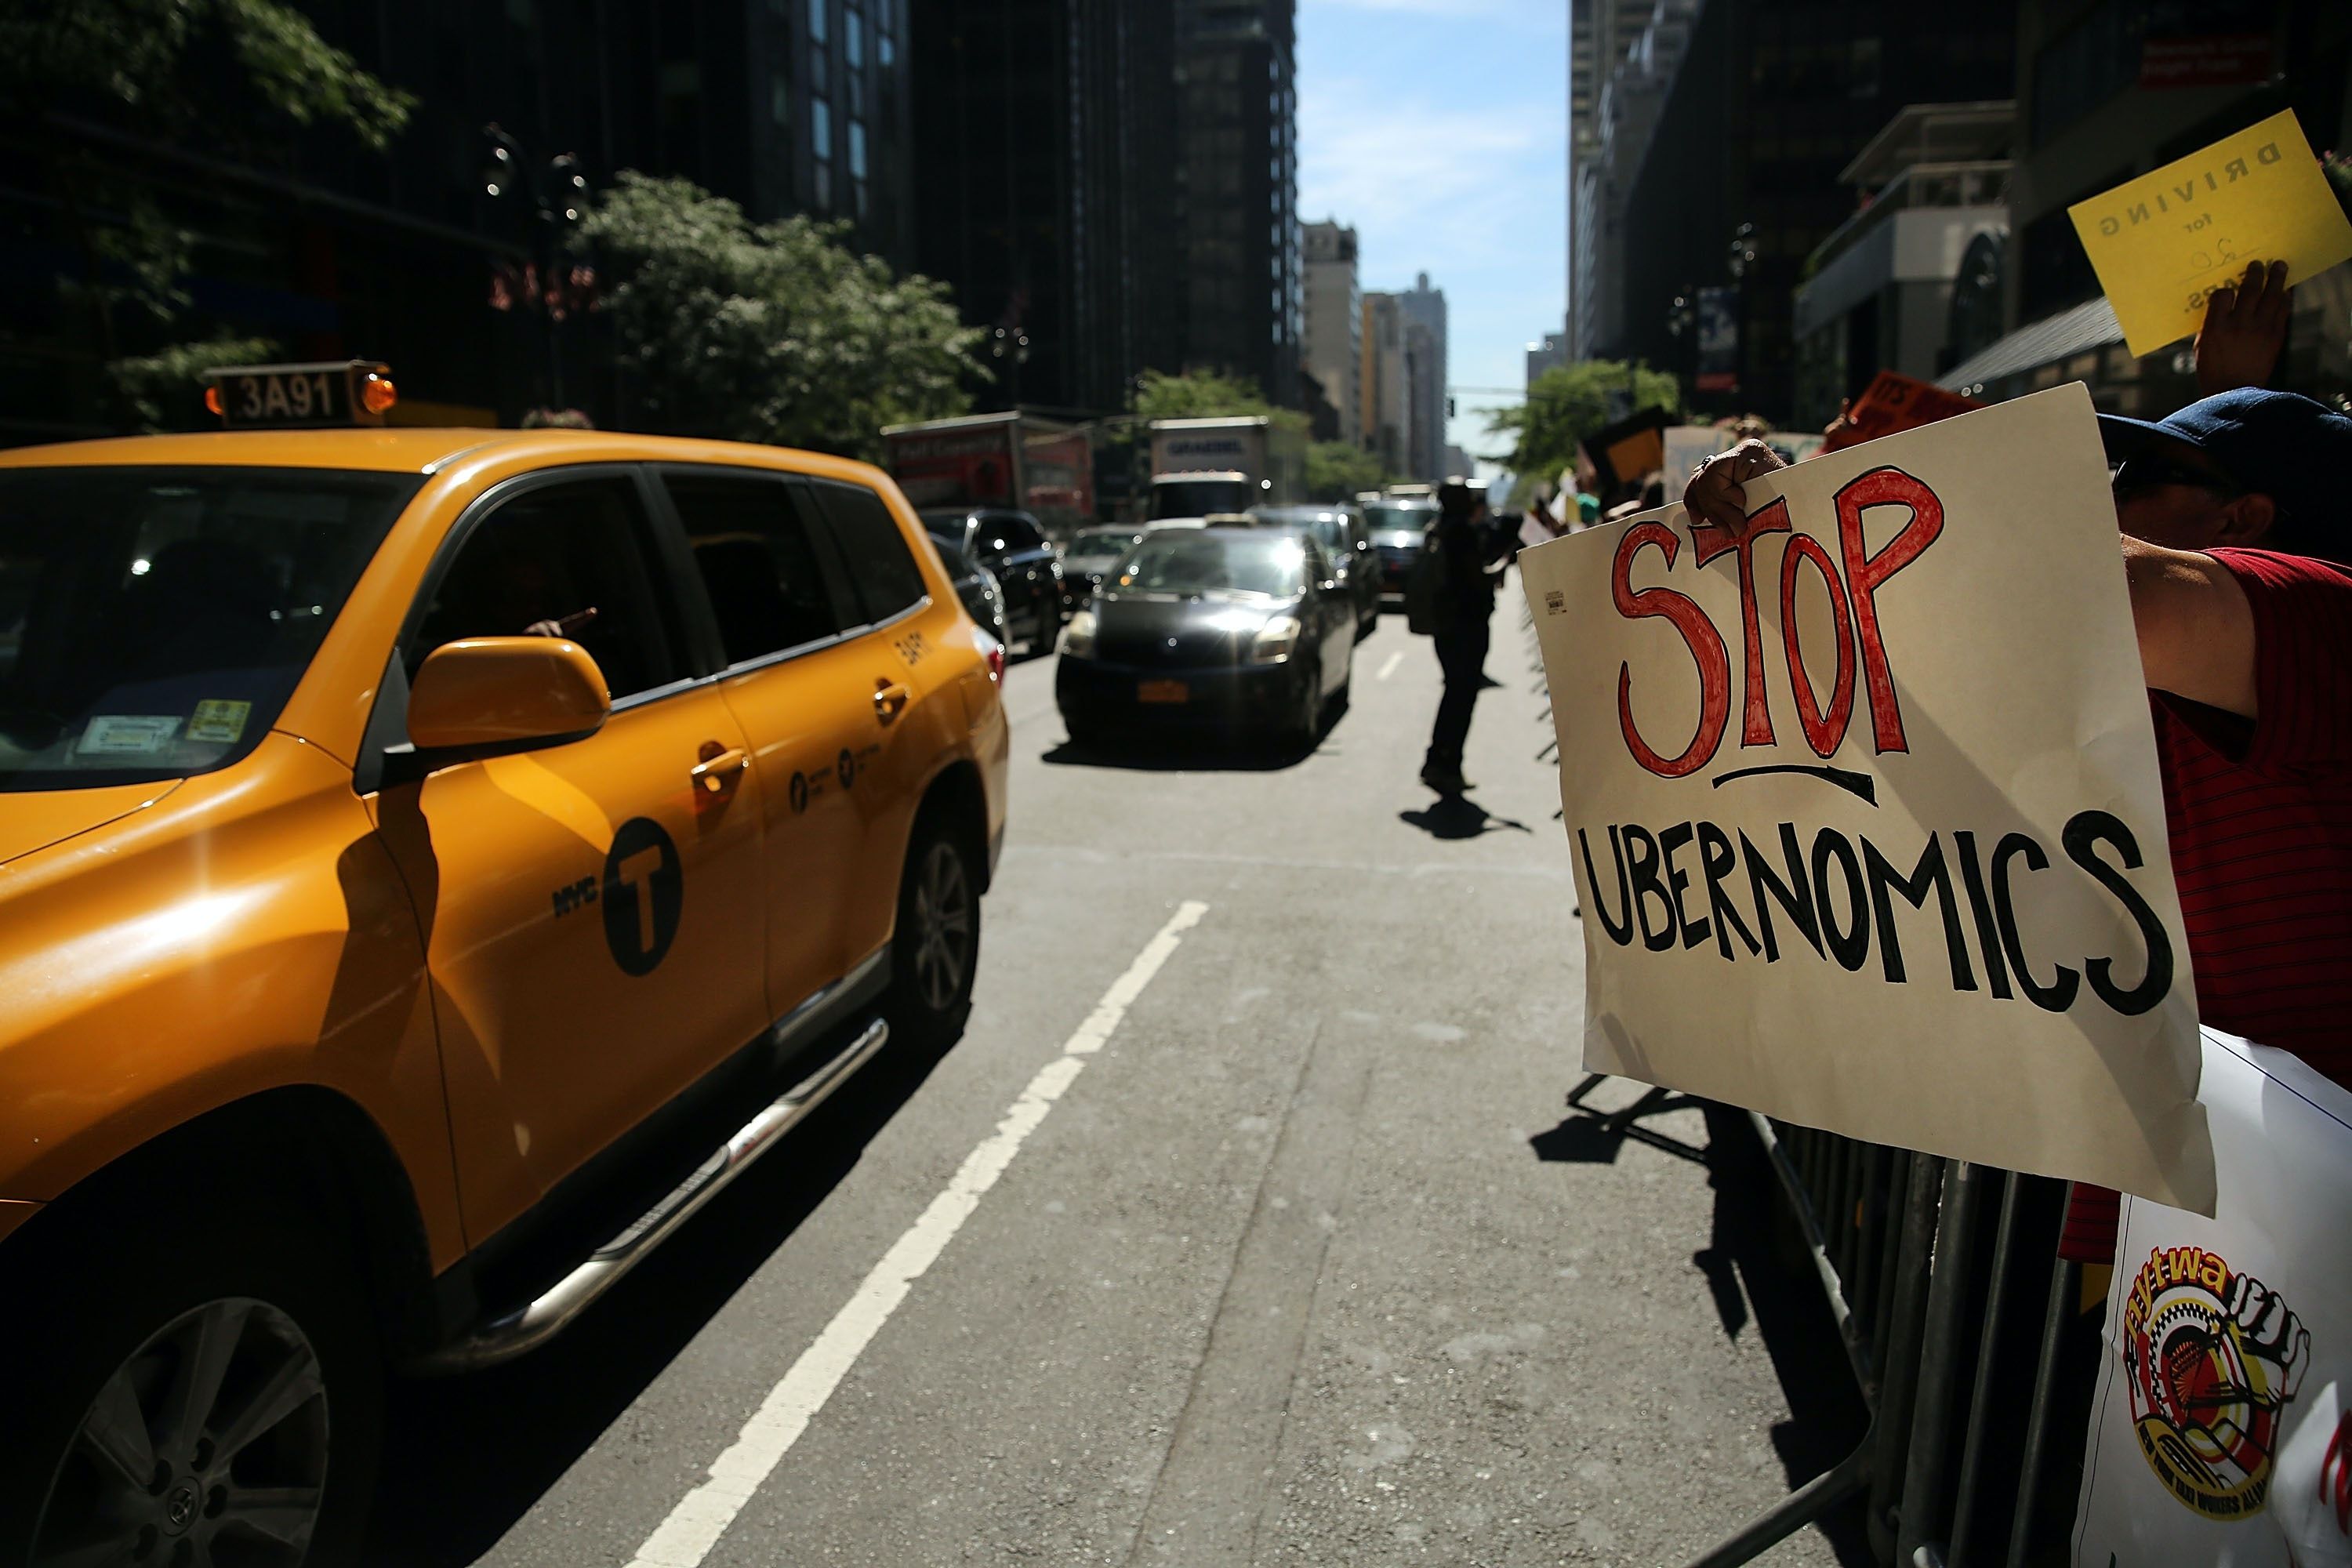 New York City cab drivers face depression and debt amid